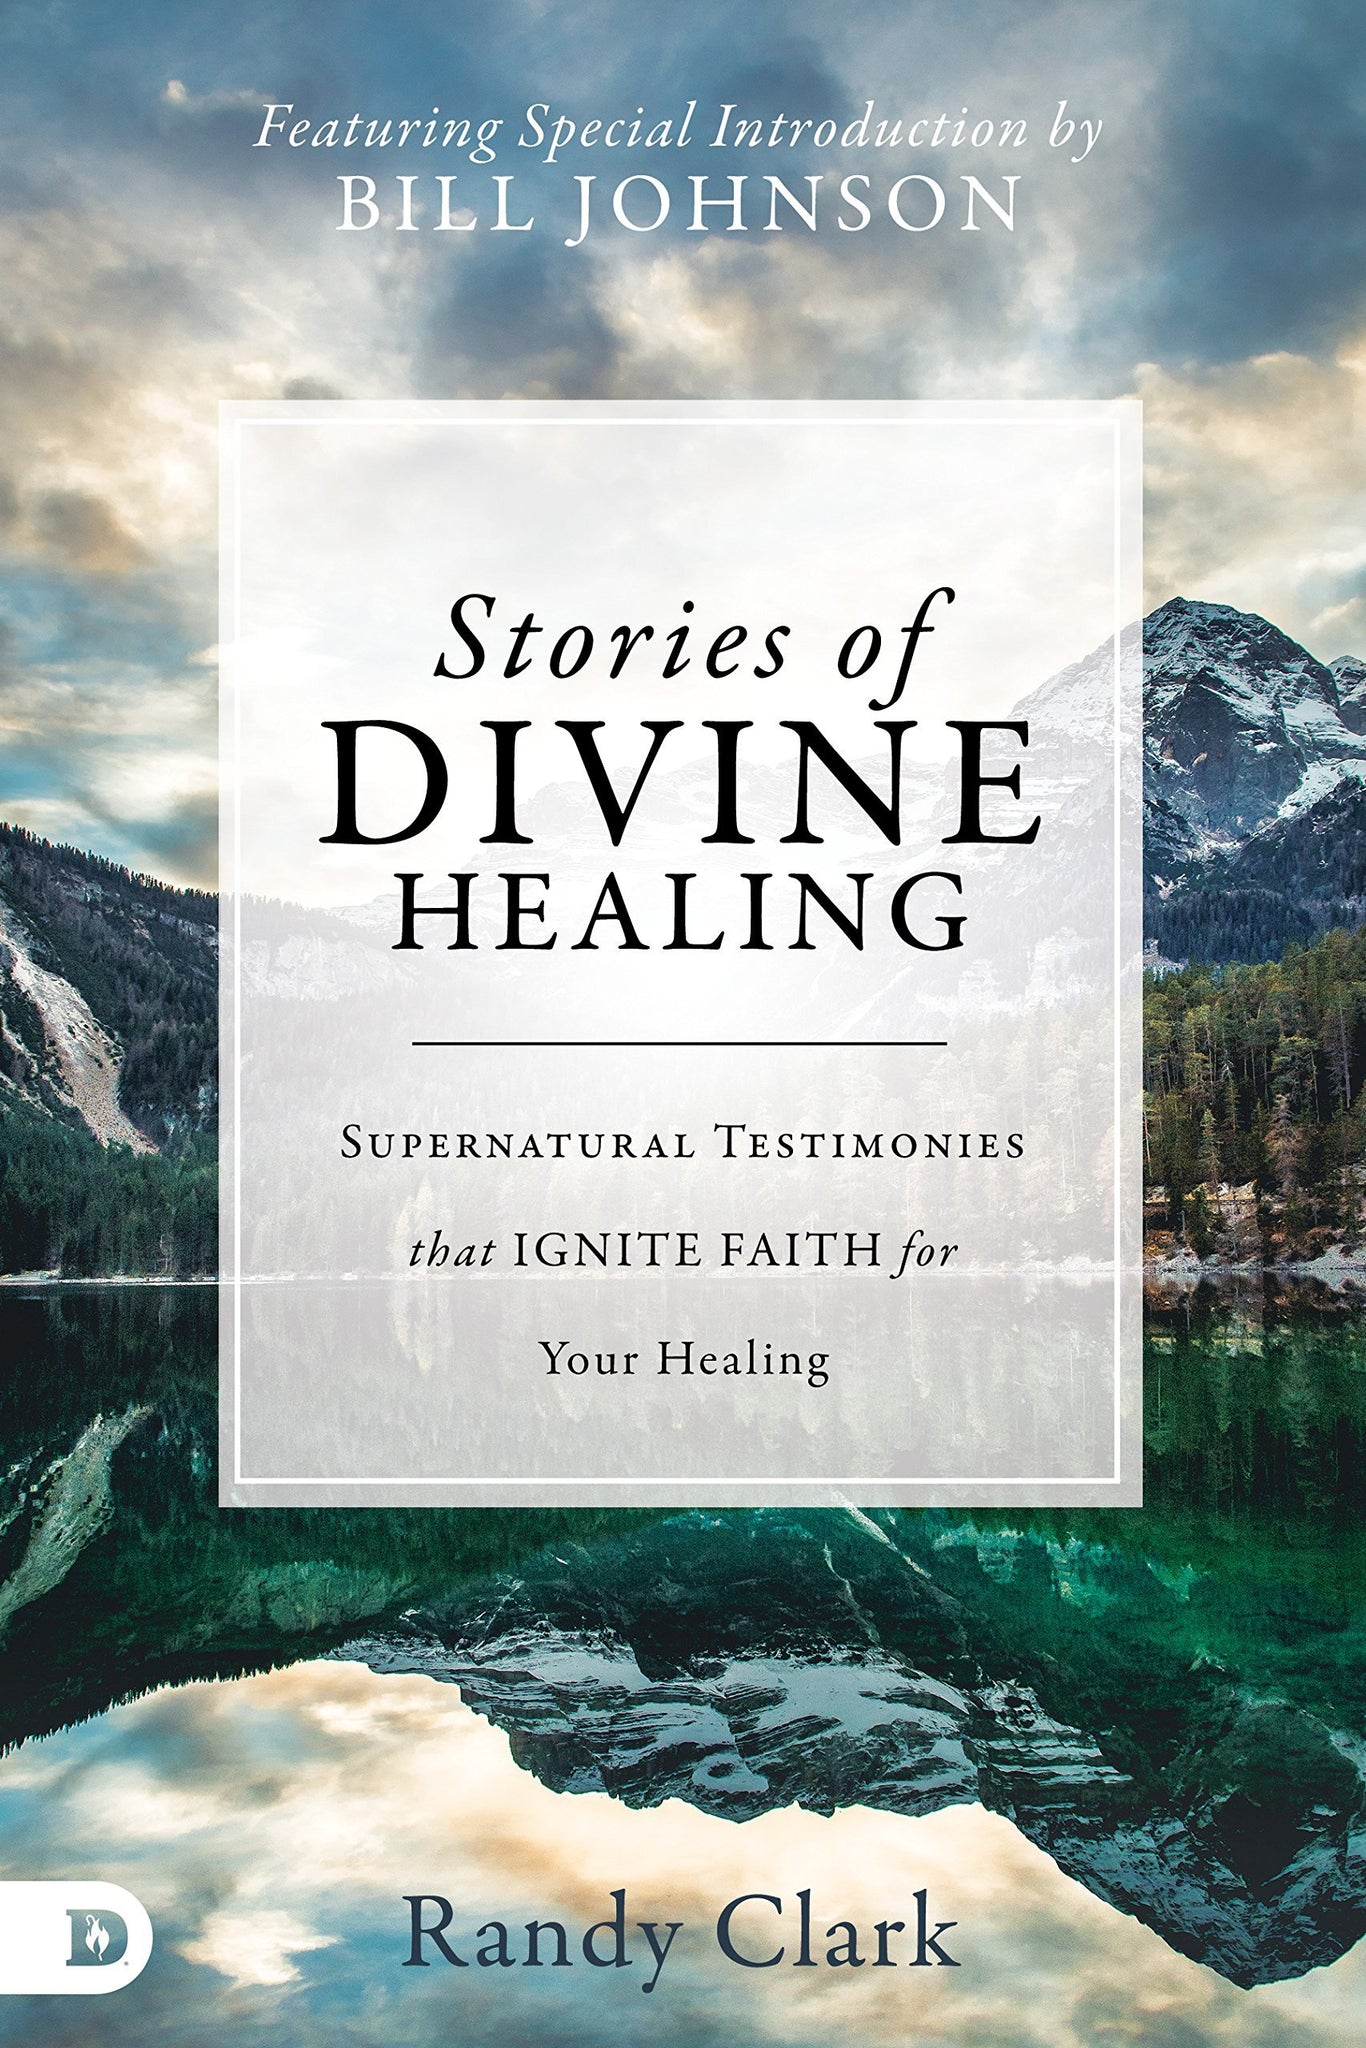 Stories of Divine Healing: Supernatural Testimonies that Ignite Faith for Your Healing